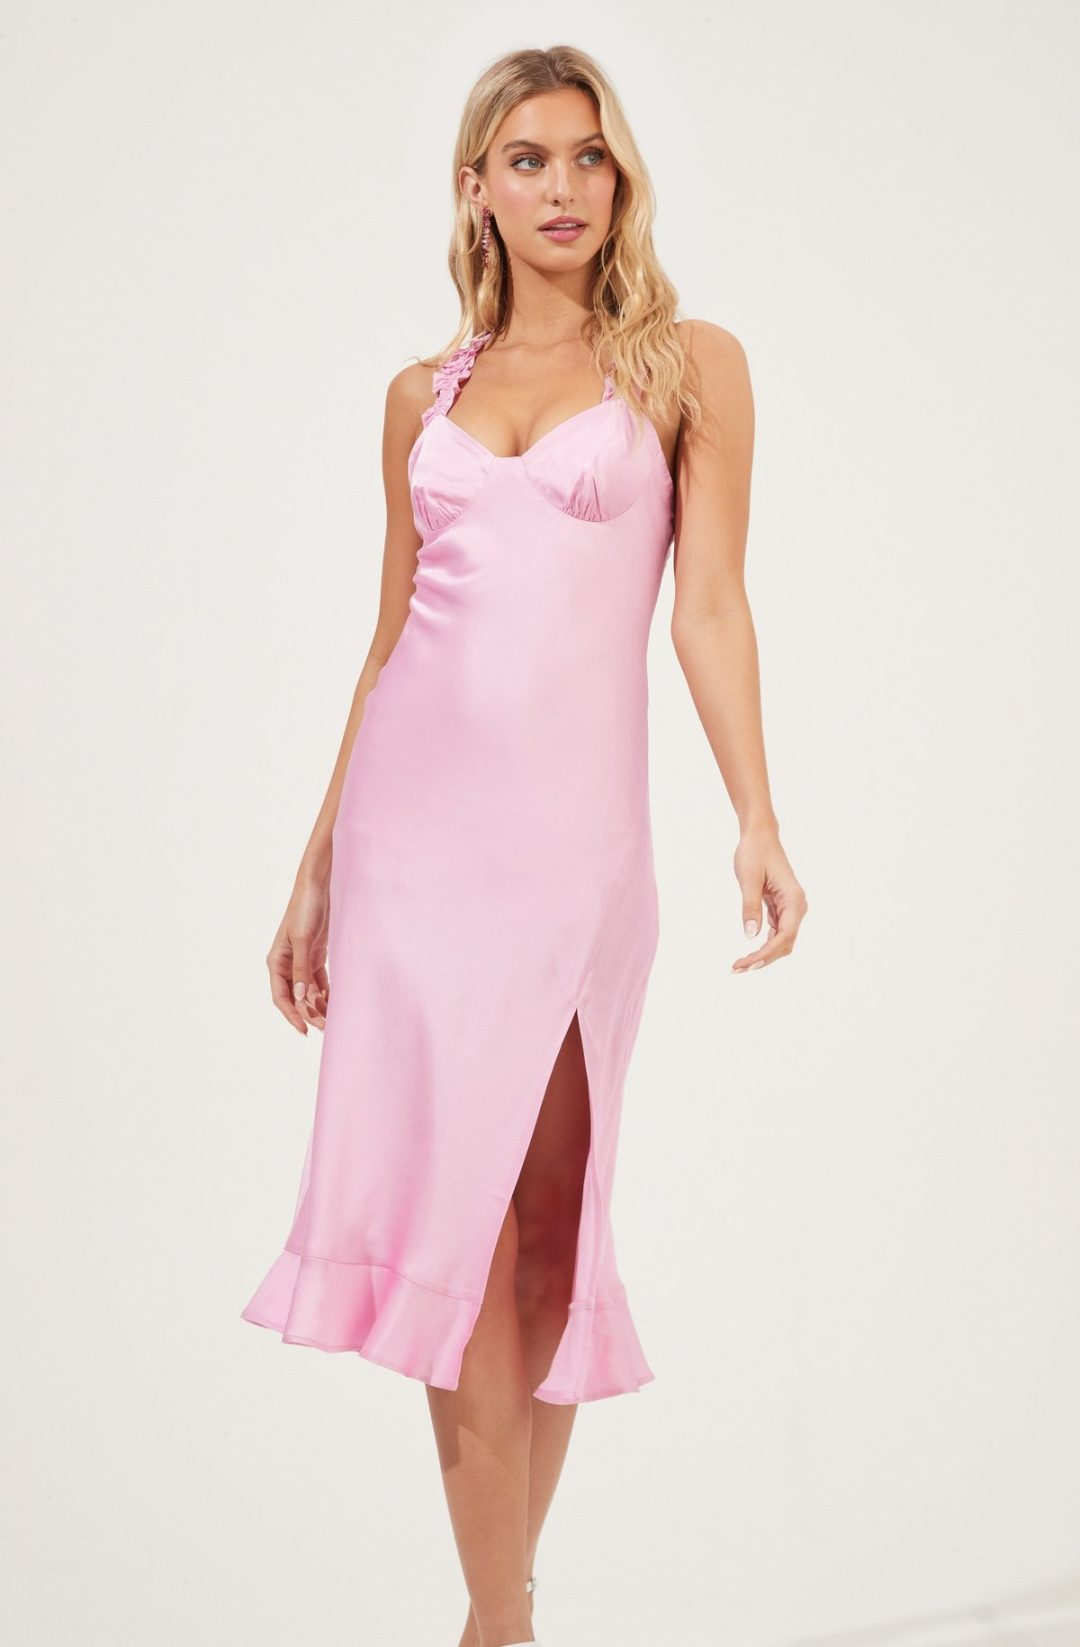 Satin pink midi dress with slit for date night dresses